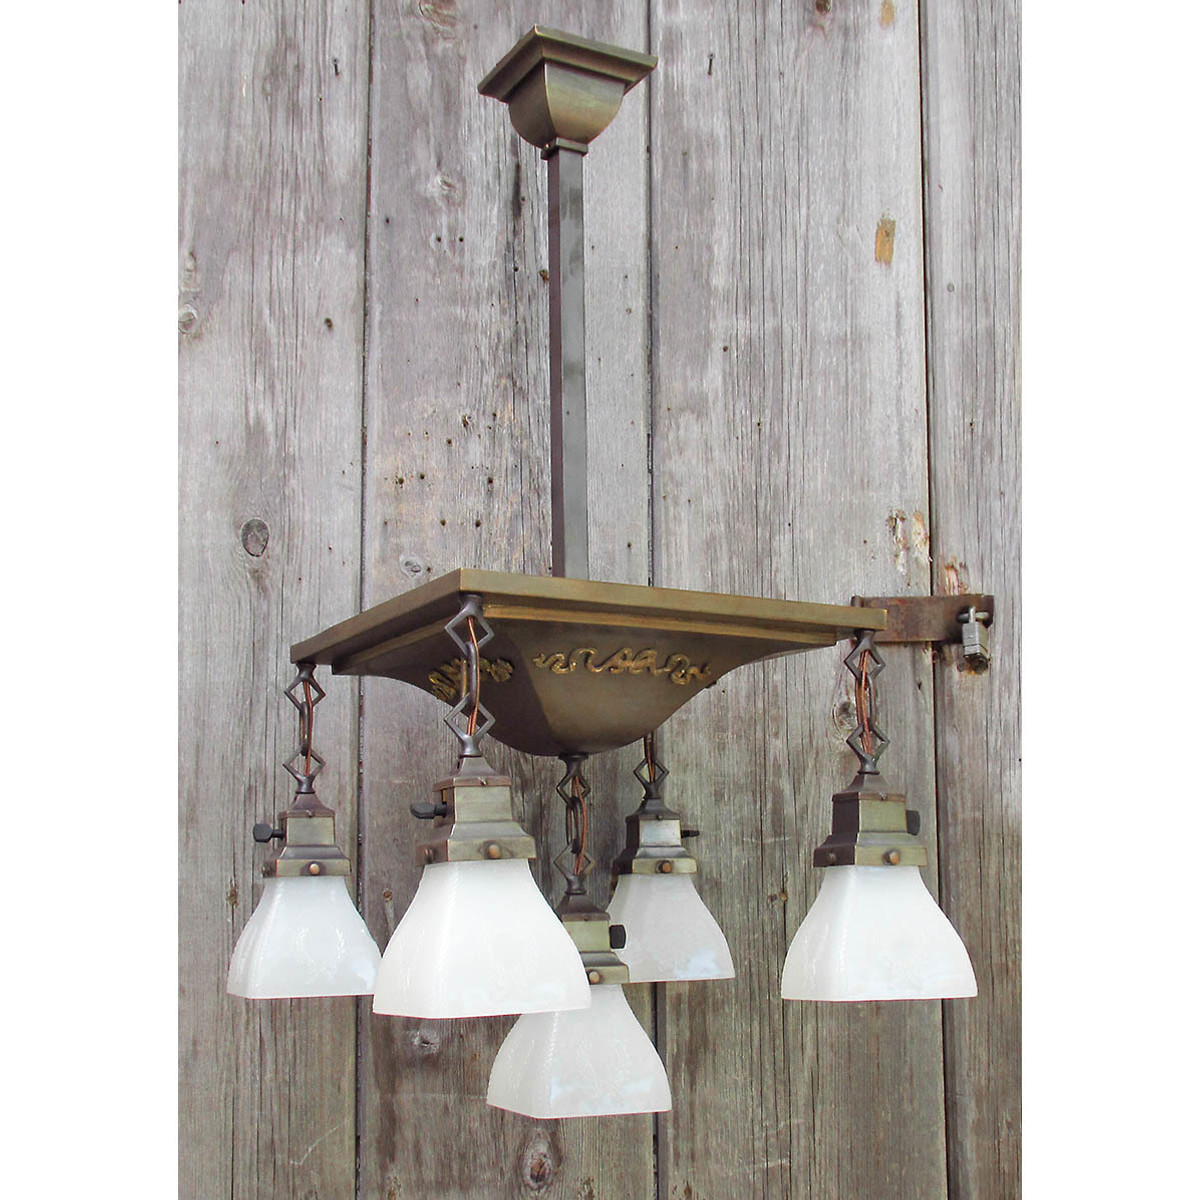 L16154 - Antique Transitional Arts & Crafts/Neoclassical Style Fixture